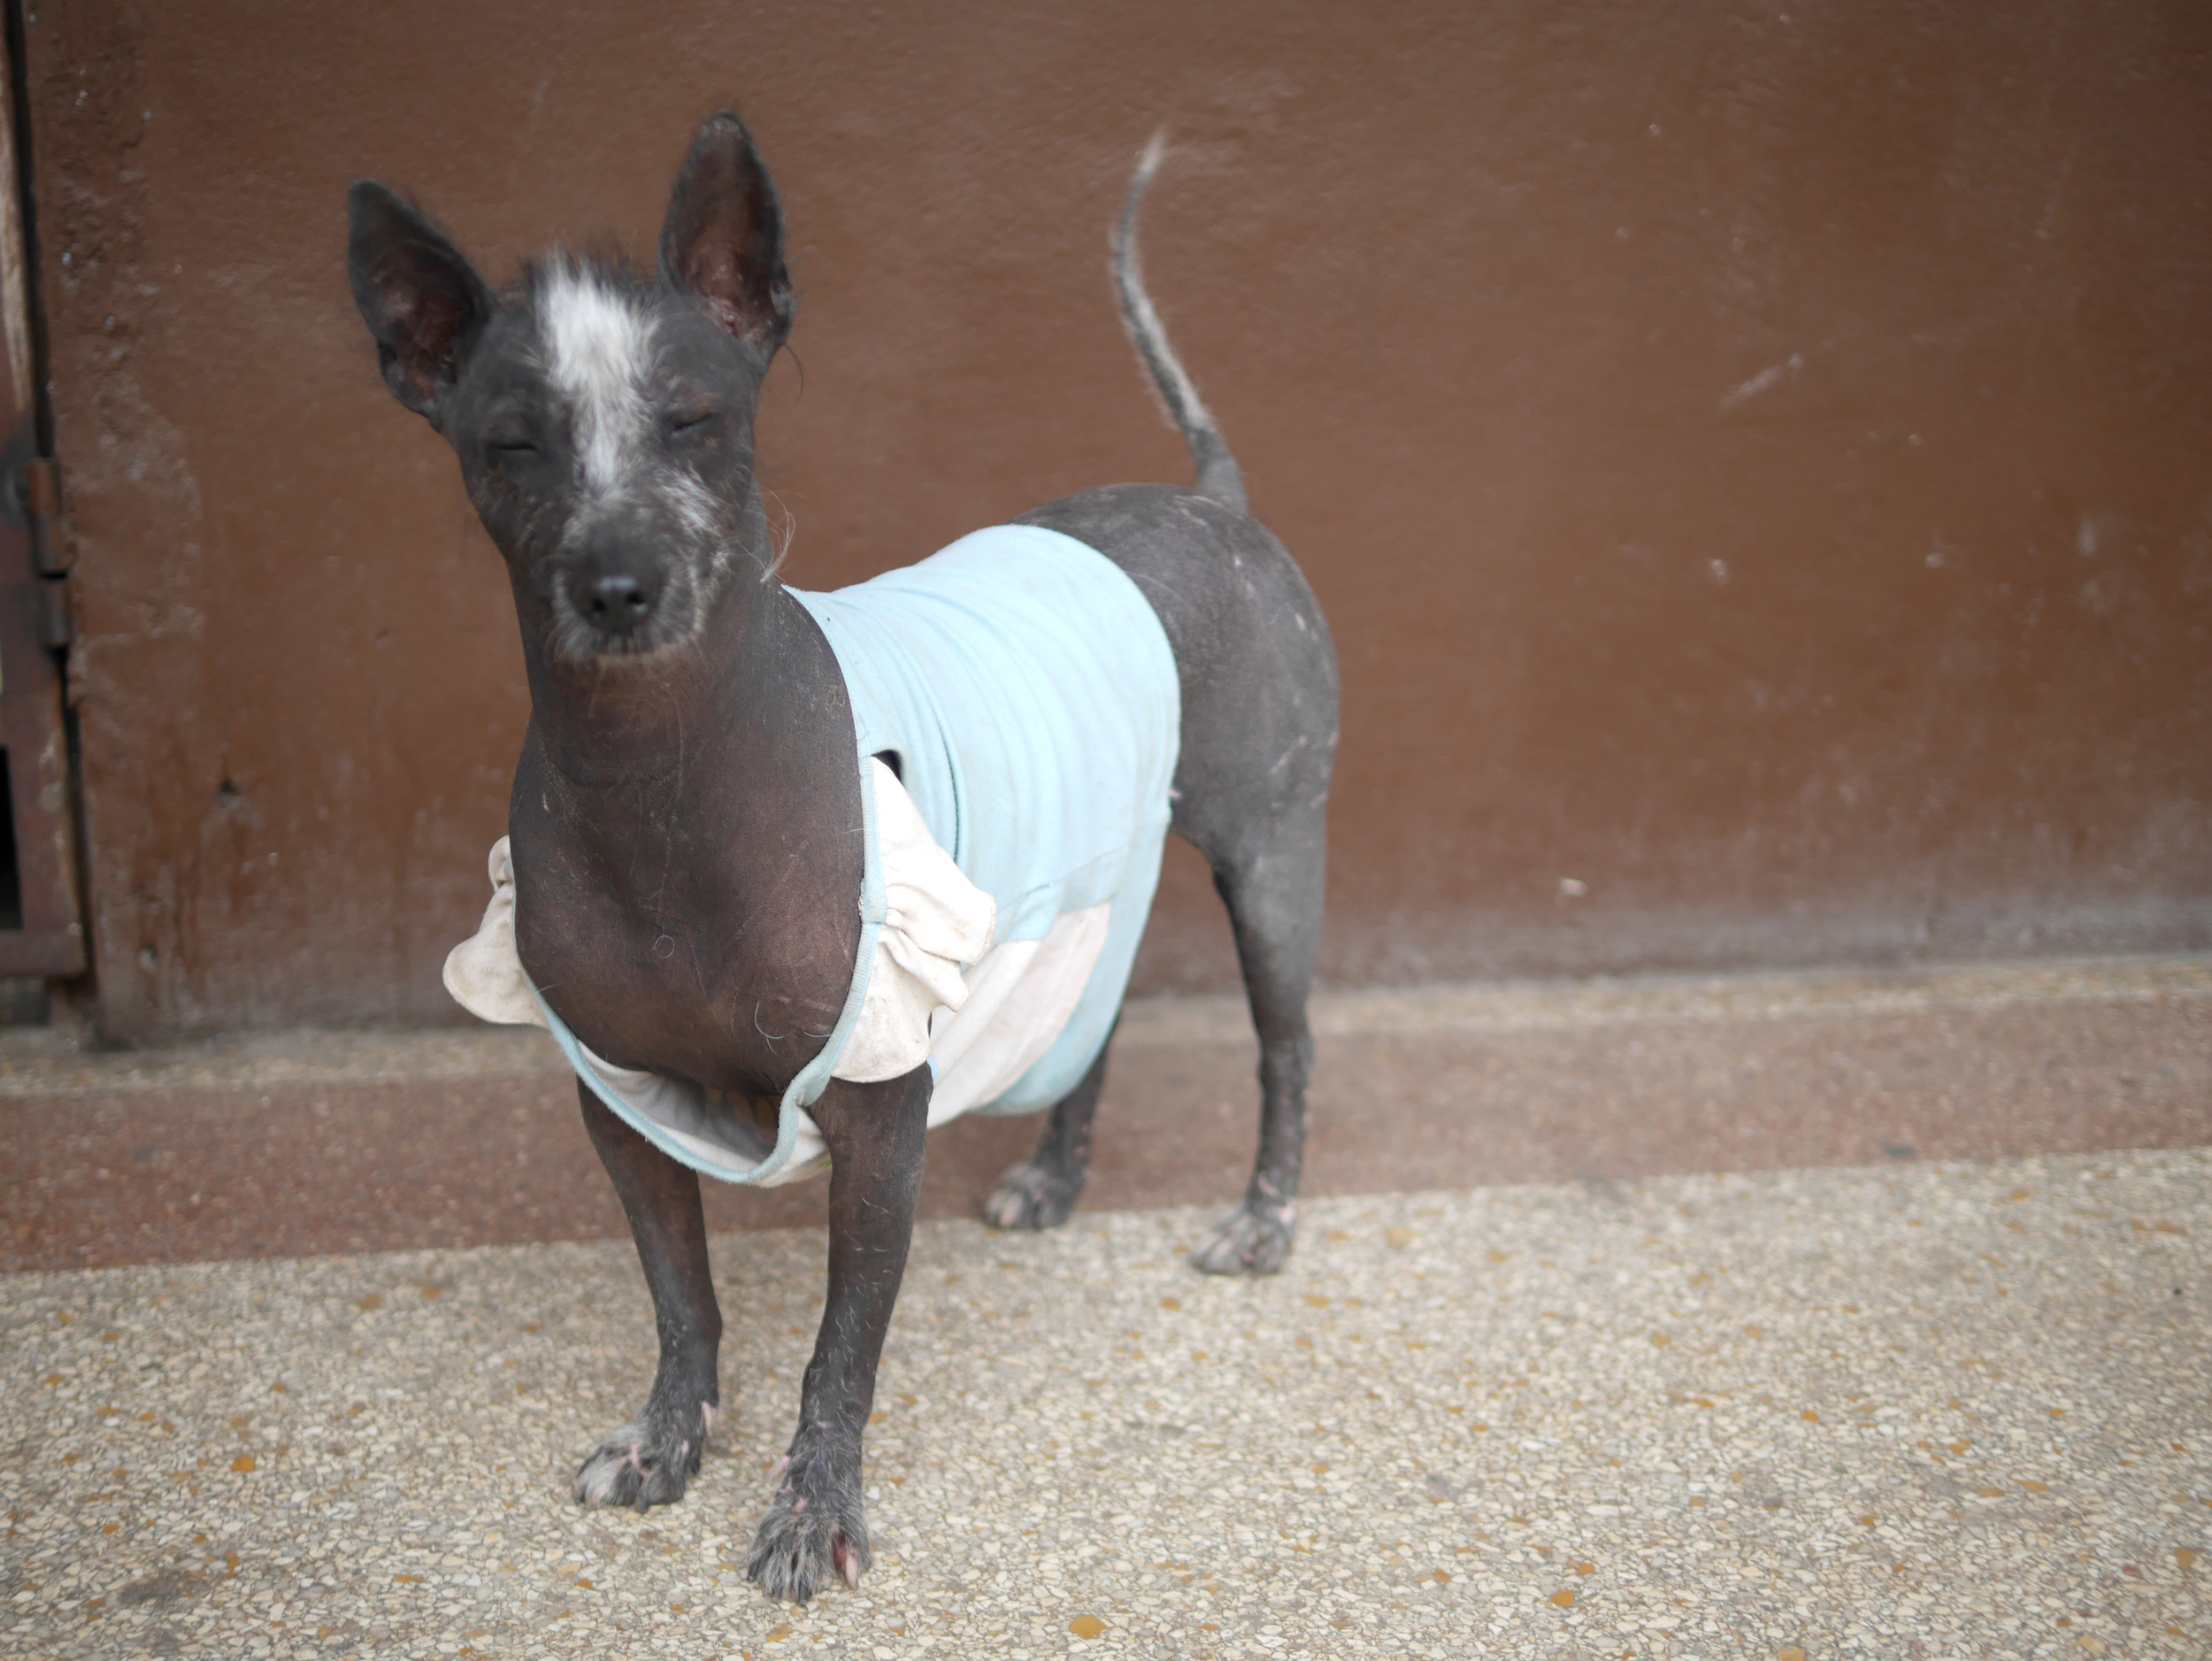 This is Jodi! She's wearing a baby shirt so people will know she's not a stray. There's no collars in Cuba. Awwwww Jodi we love you.